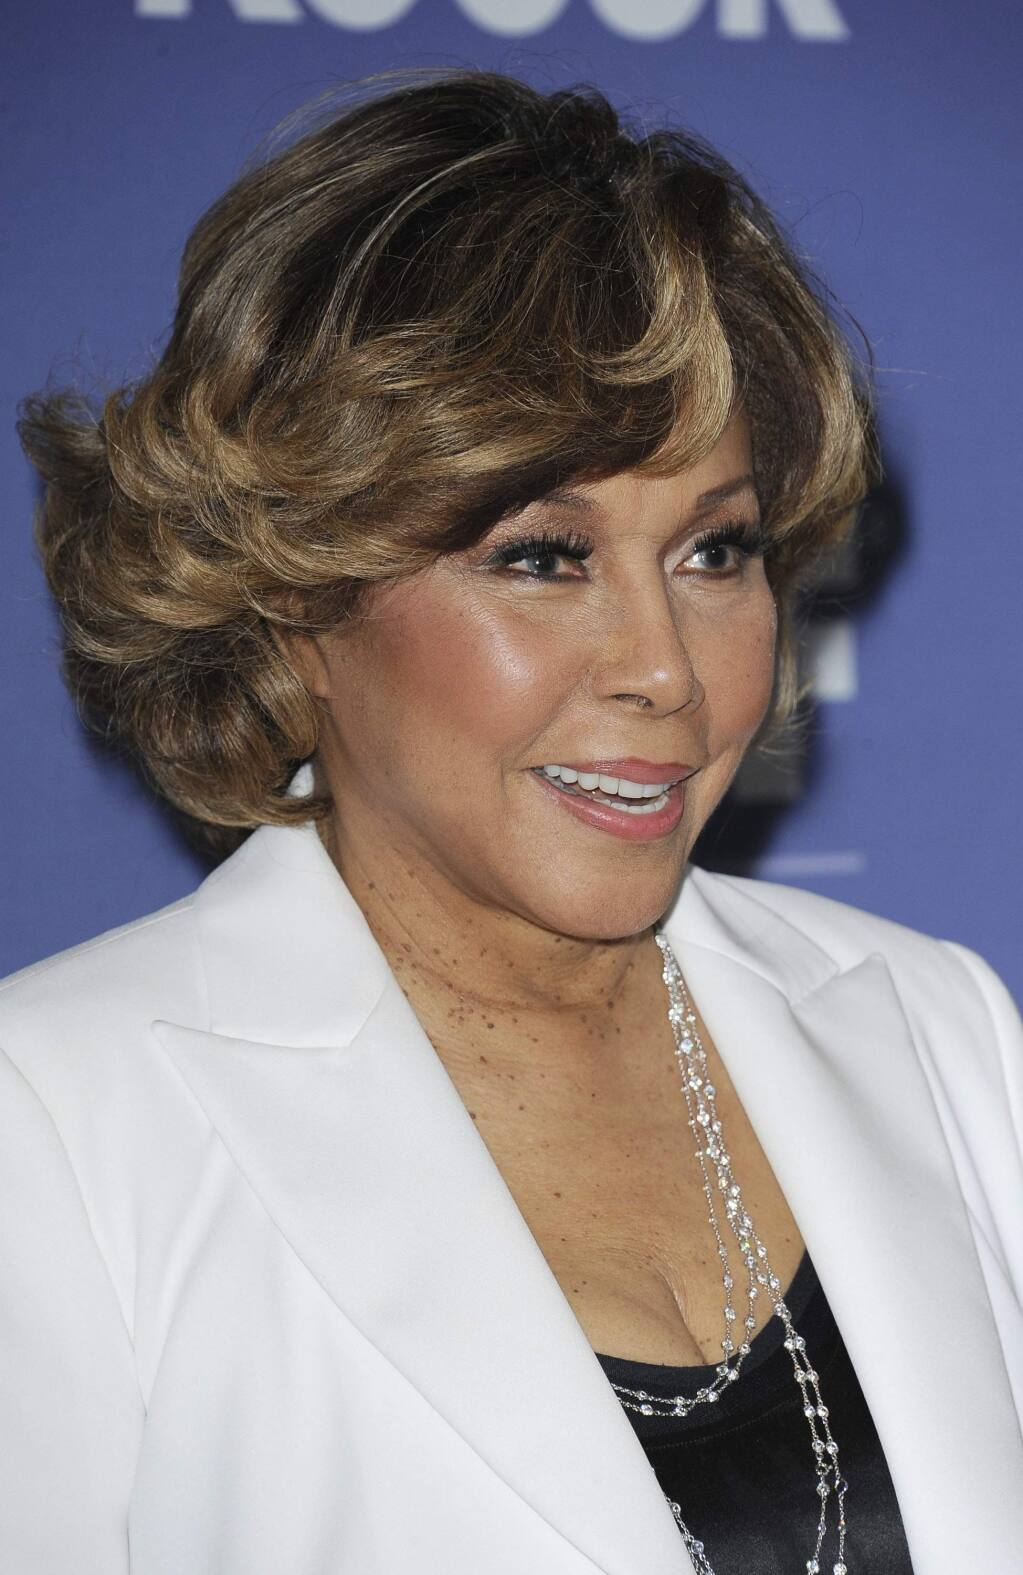 FILE - This June 12, 2013 file photo shows Diahann Carroll at Women in Film's 2013 Crystal + Lucy Awards in Beverly Hills, Calif. Carroll died, Friday, Oct. 4, 2019, at her home in Los Angeles after a long bout with cancer. She was 84. (Photo by Katy Winn/Invision/AP, File)